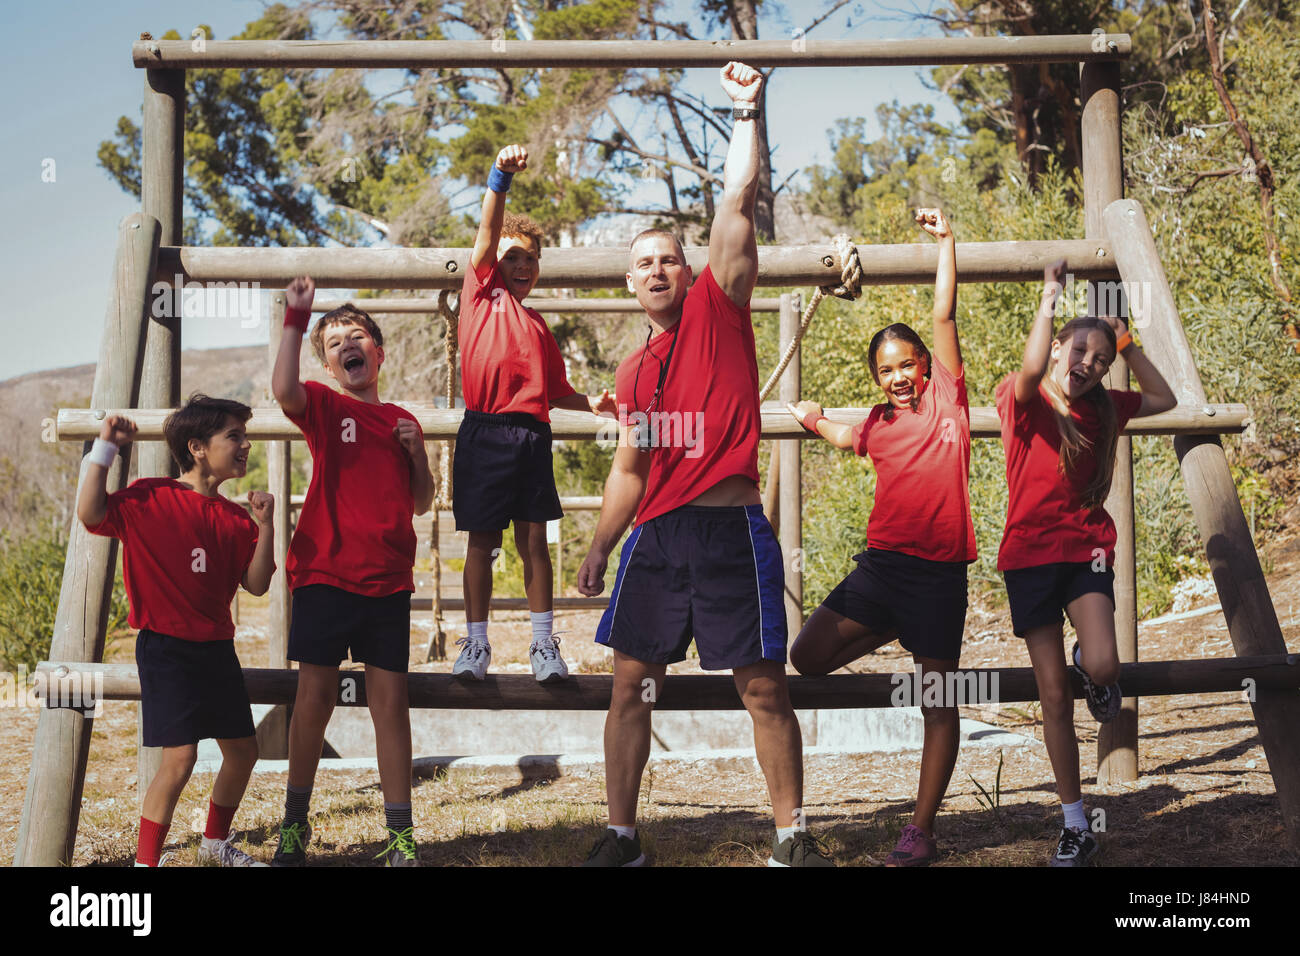 Portrait of trainer and kids standing together in the boot camp - Stock Image